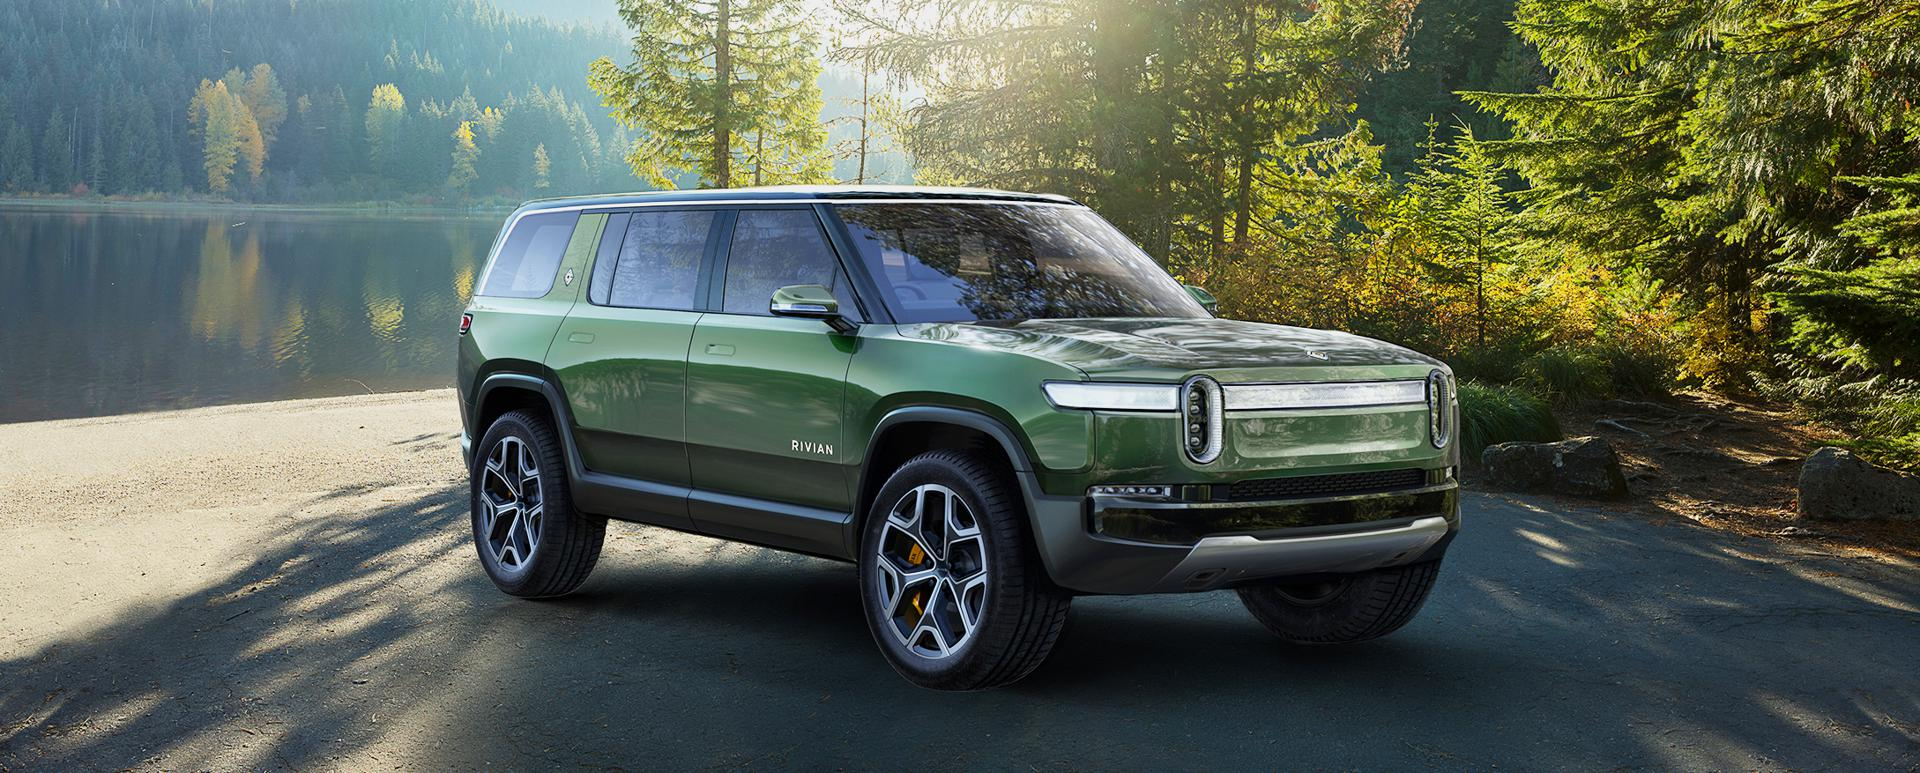 Nature Toy: Rivian's R1S looks so posh standing still, it's hard to believe the seven-seat SUV can be so ferocious on or off the hardtop.